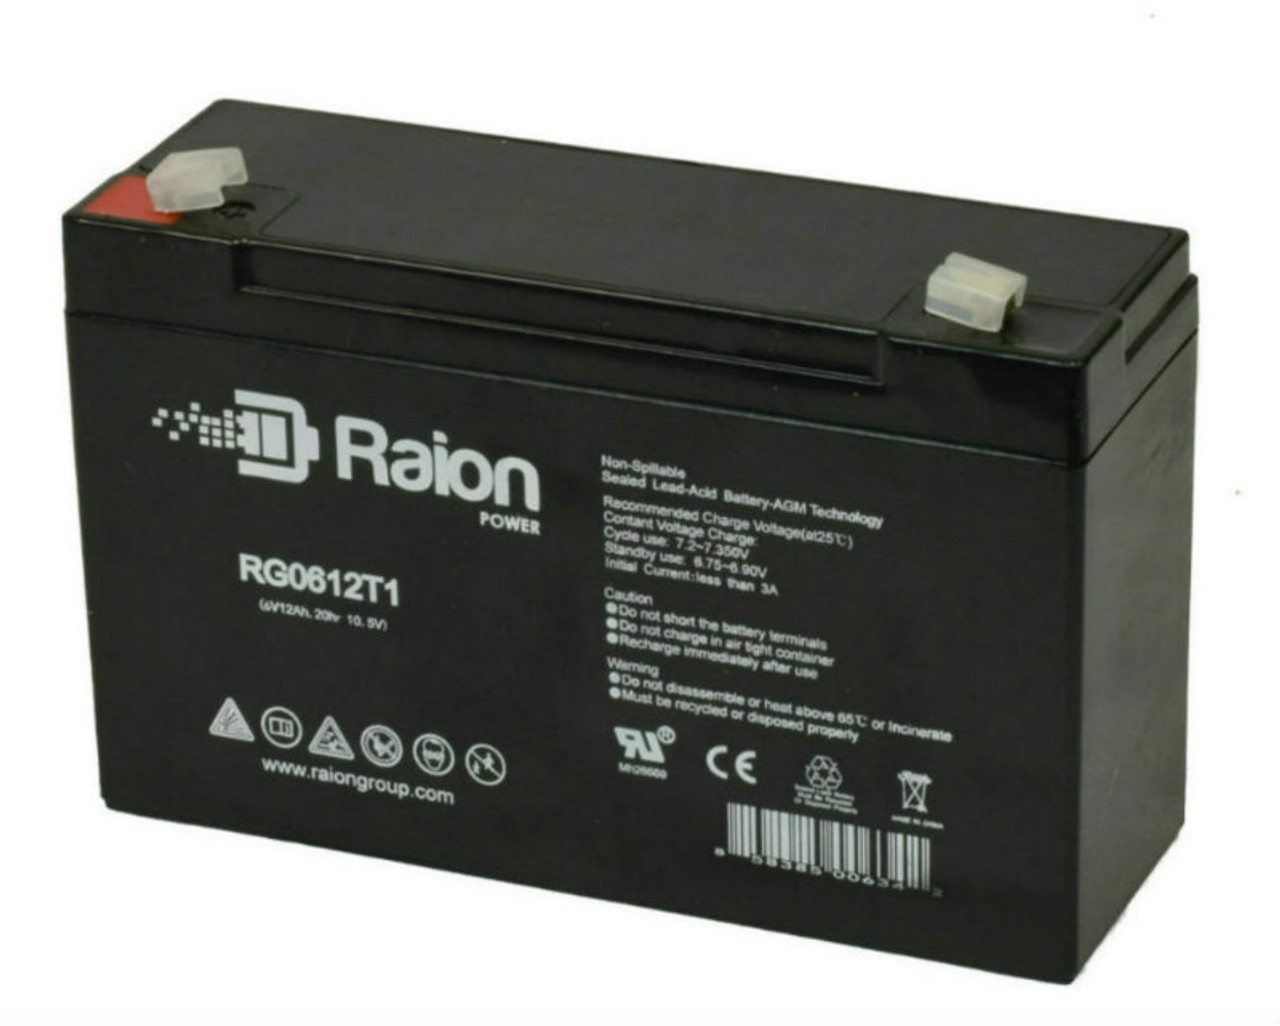 Raion Power RG06120T1 Replacement Battery Pack for Sure-Lites XR3 emergency light